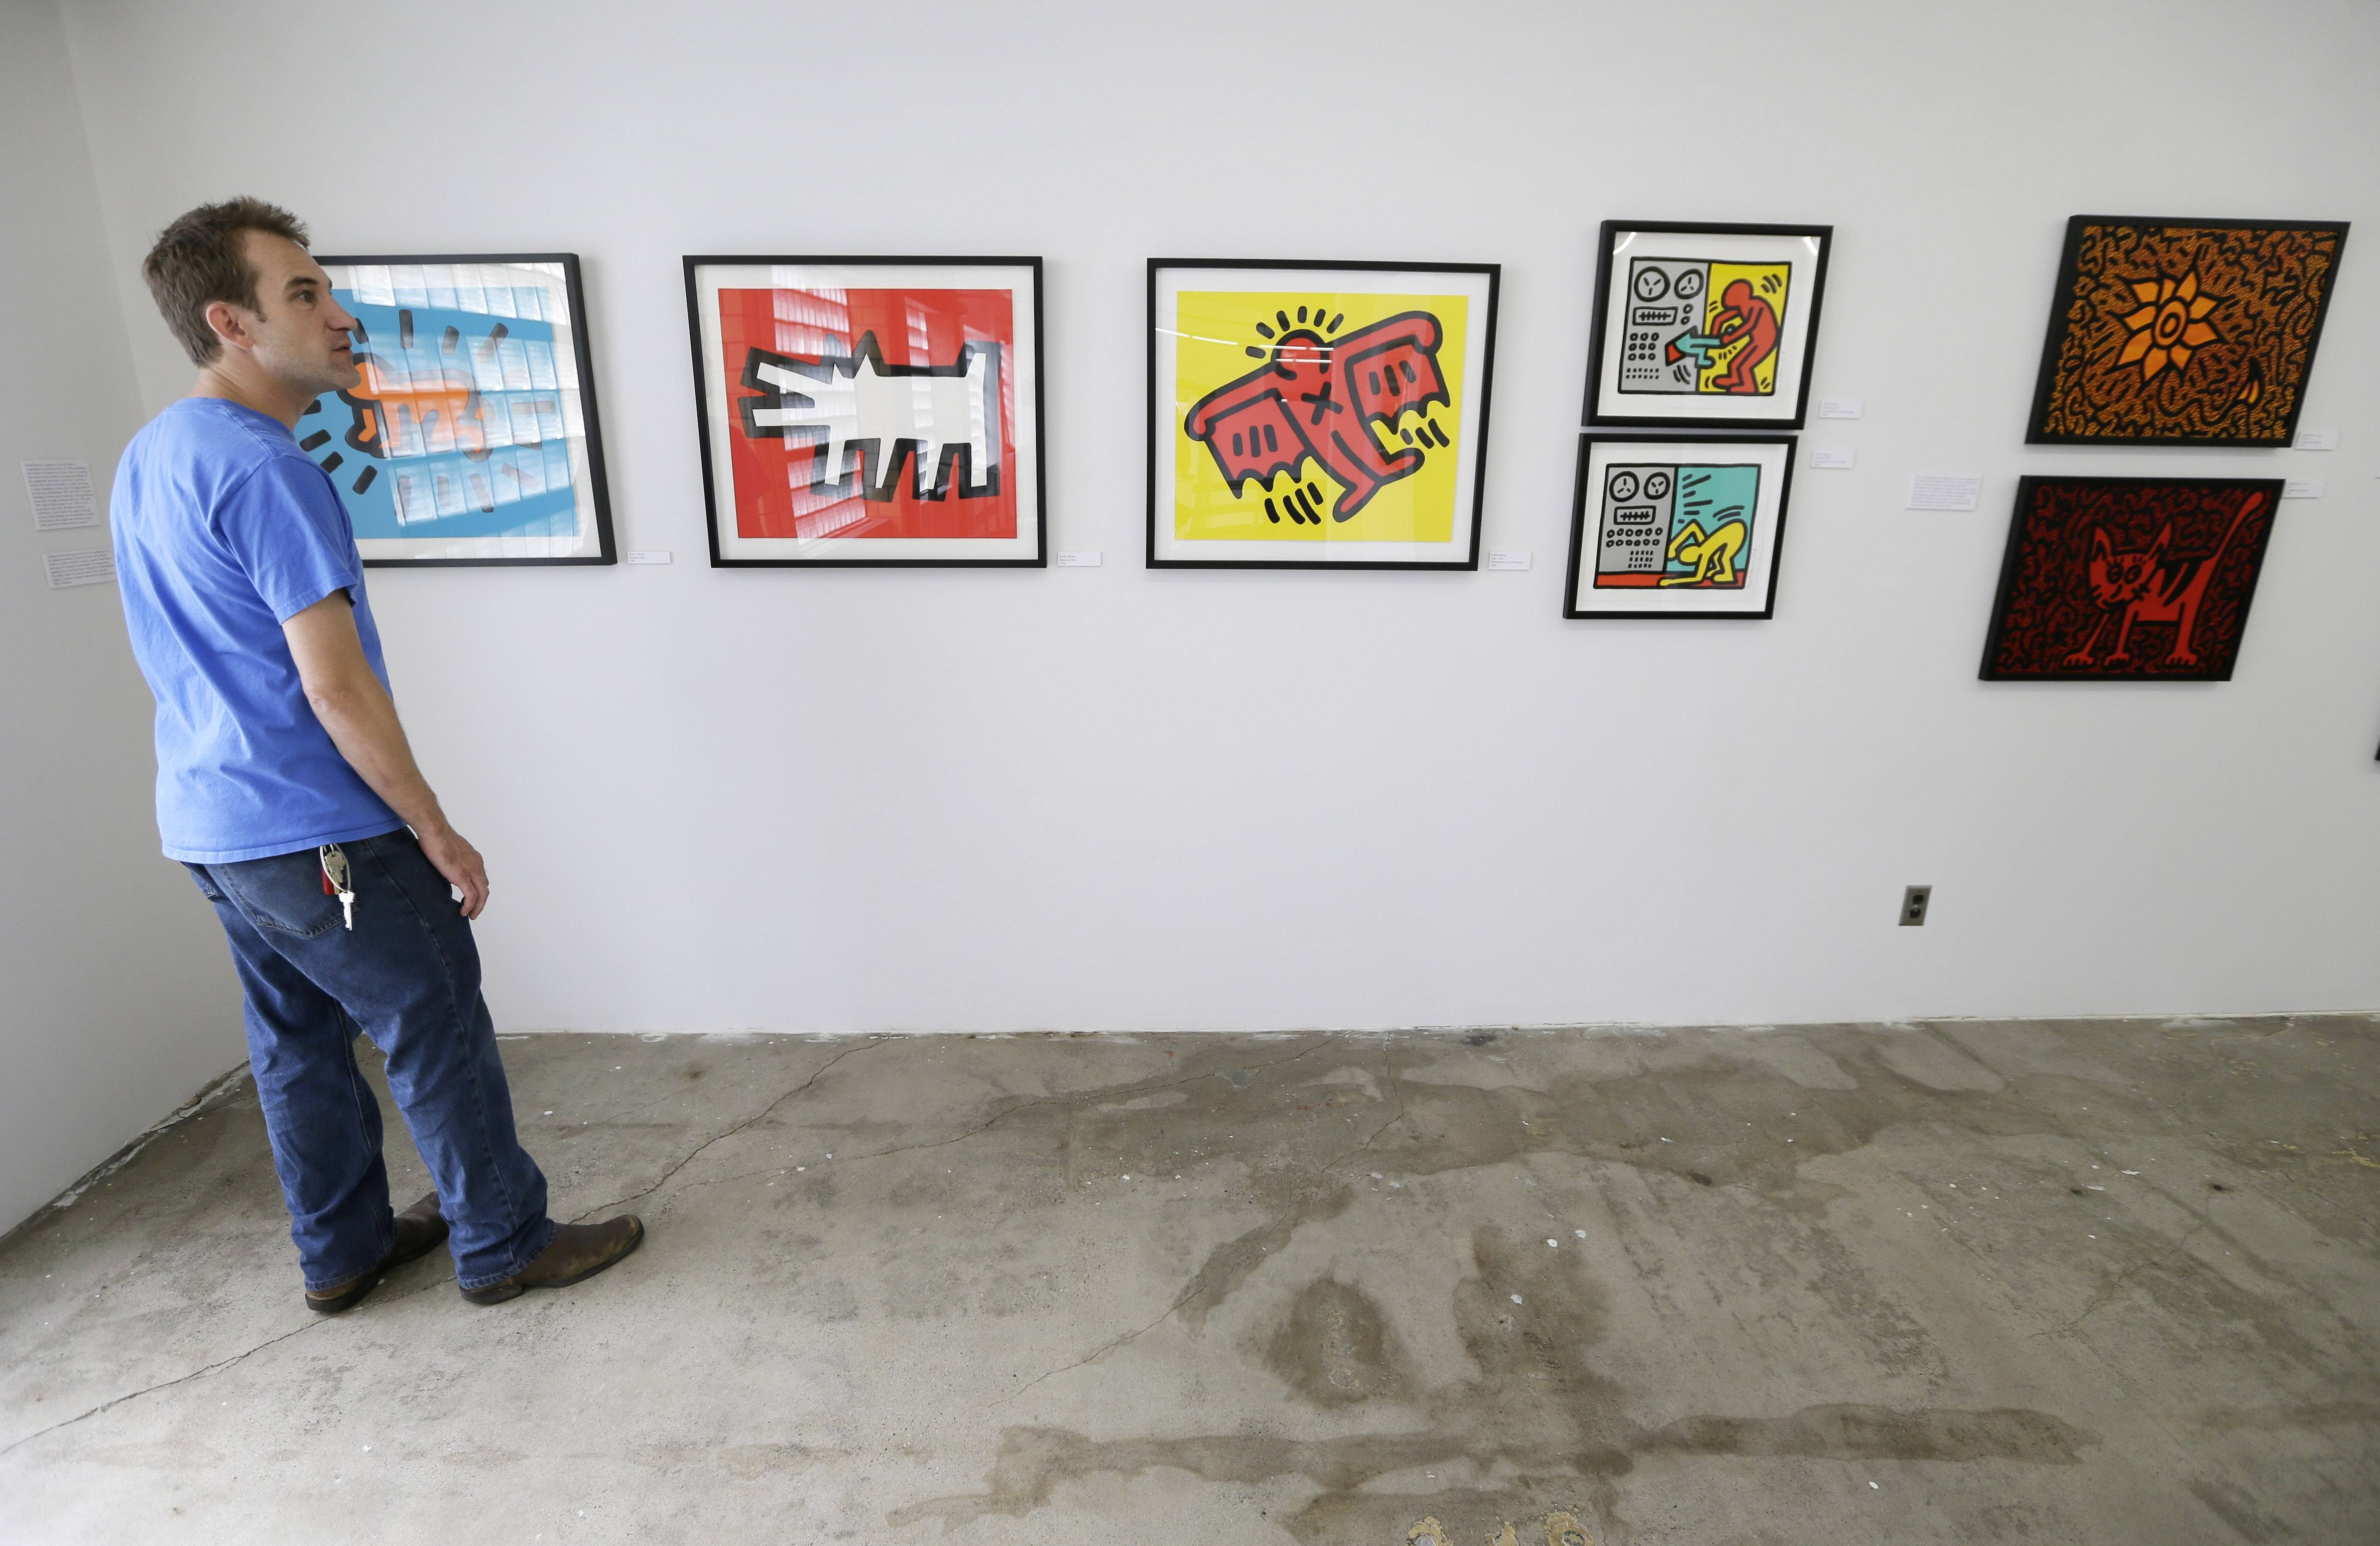 Curtis Porter, of Des Moines, Iowa, looks at art on display in the Des Moines Social Club.